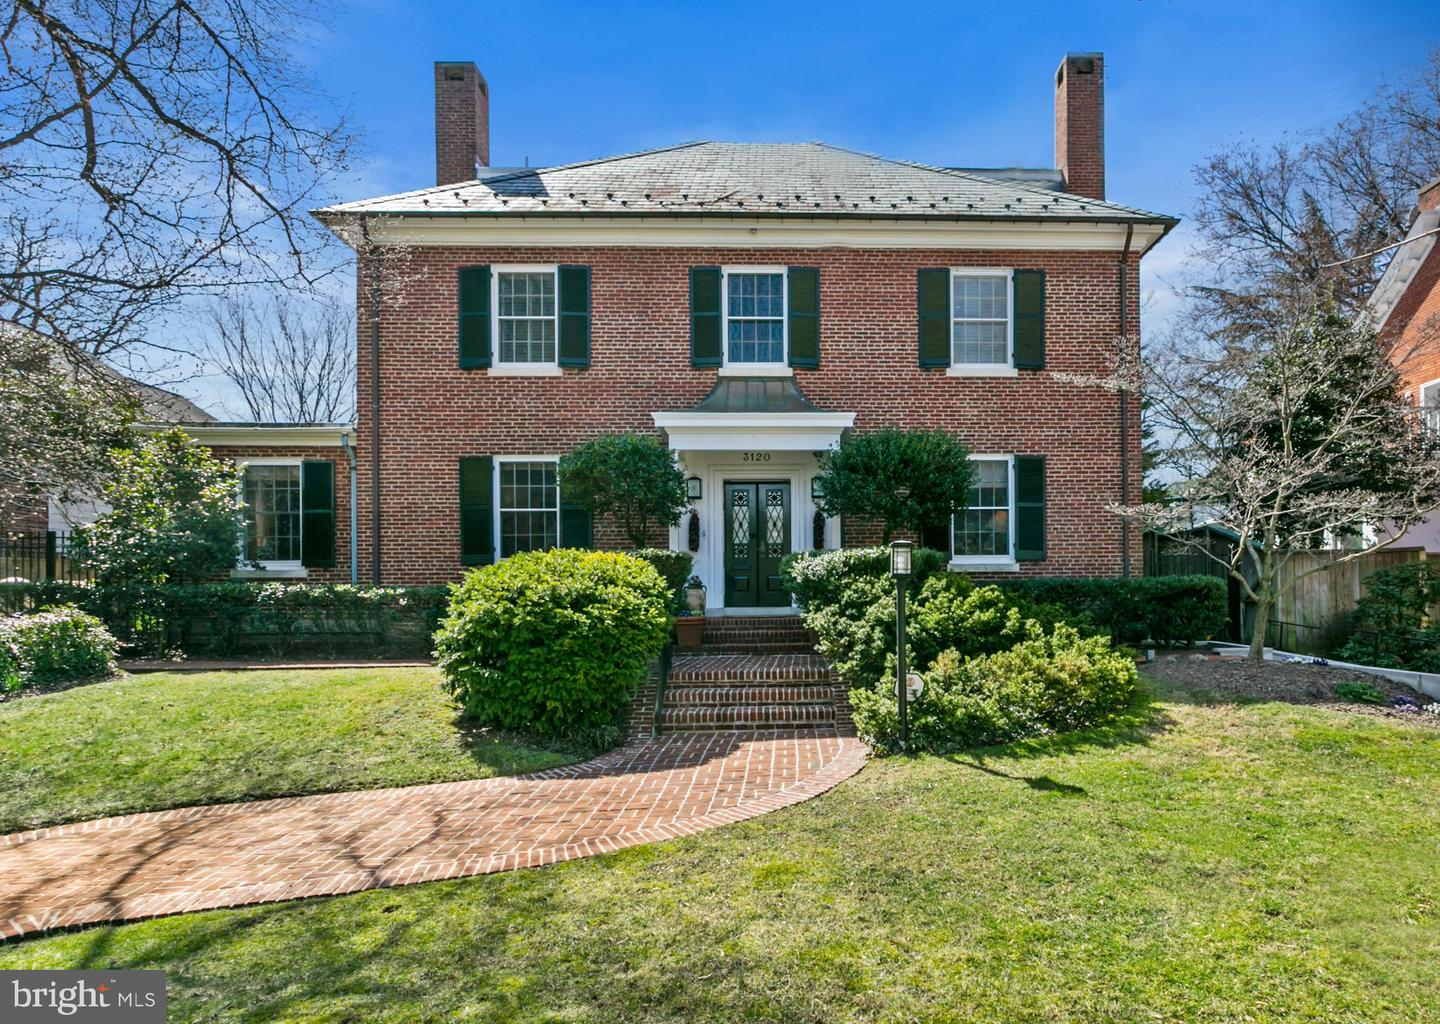 Single Family for Sale at 3120 Woodley Rd NW 3120 Woodley Rd NW Washington, District Of Columbia 20008 United States